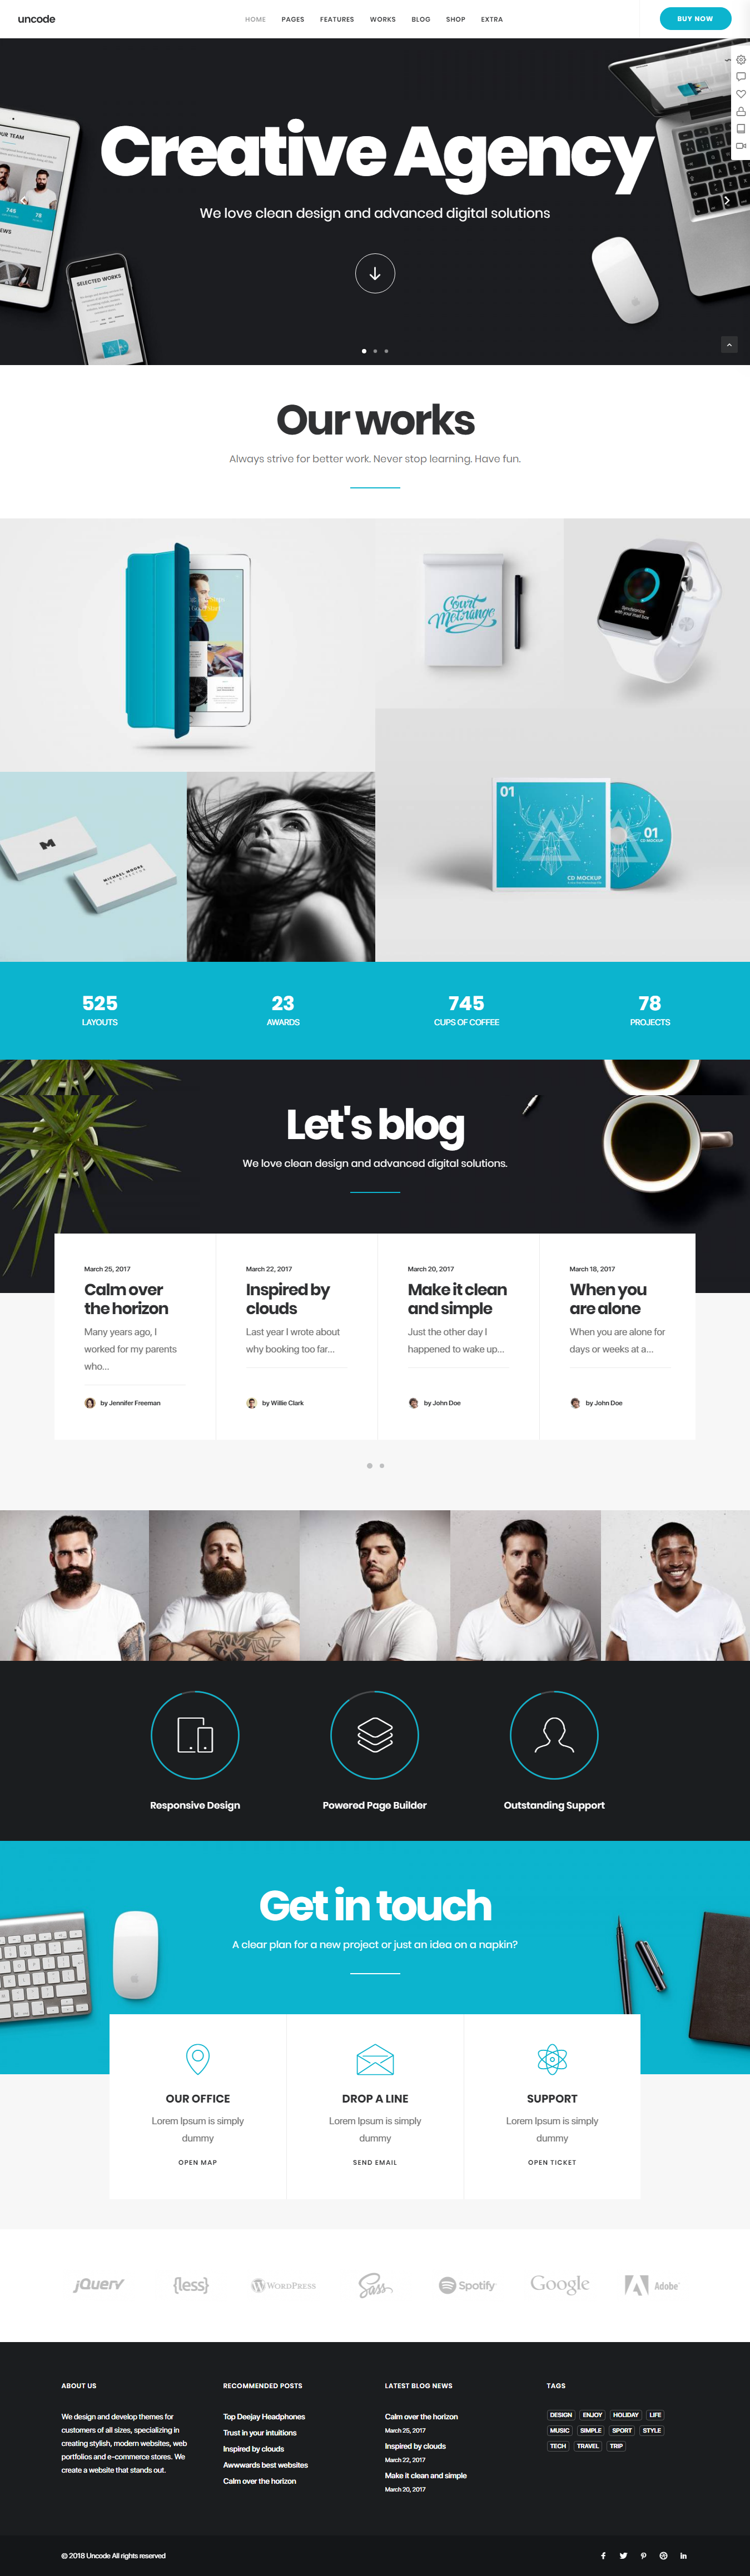 Uncode - Premium Agency WordPress Themes and Templates